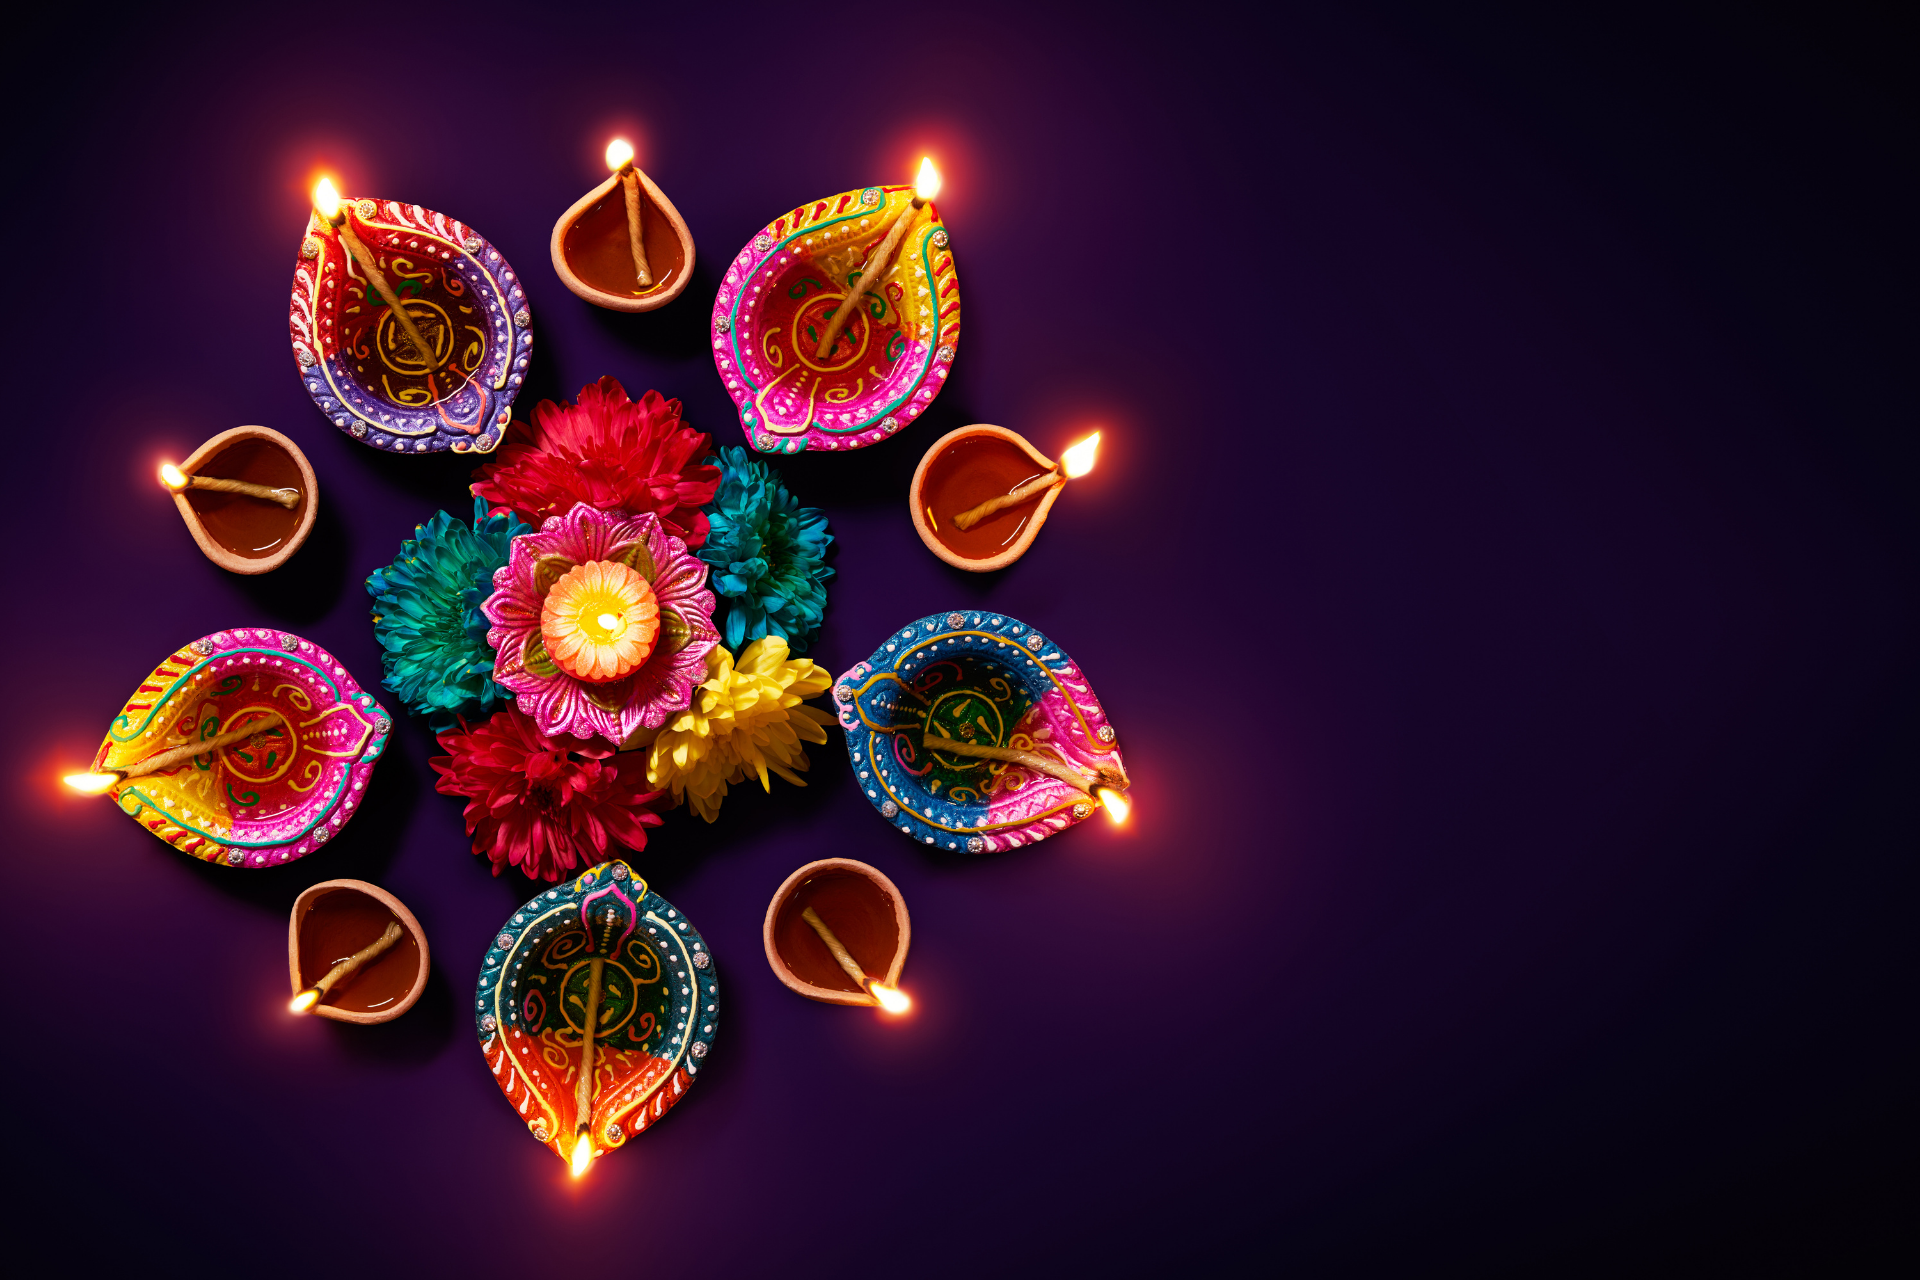 5 Digital Marketing Insights From Diwali 2019